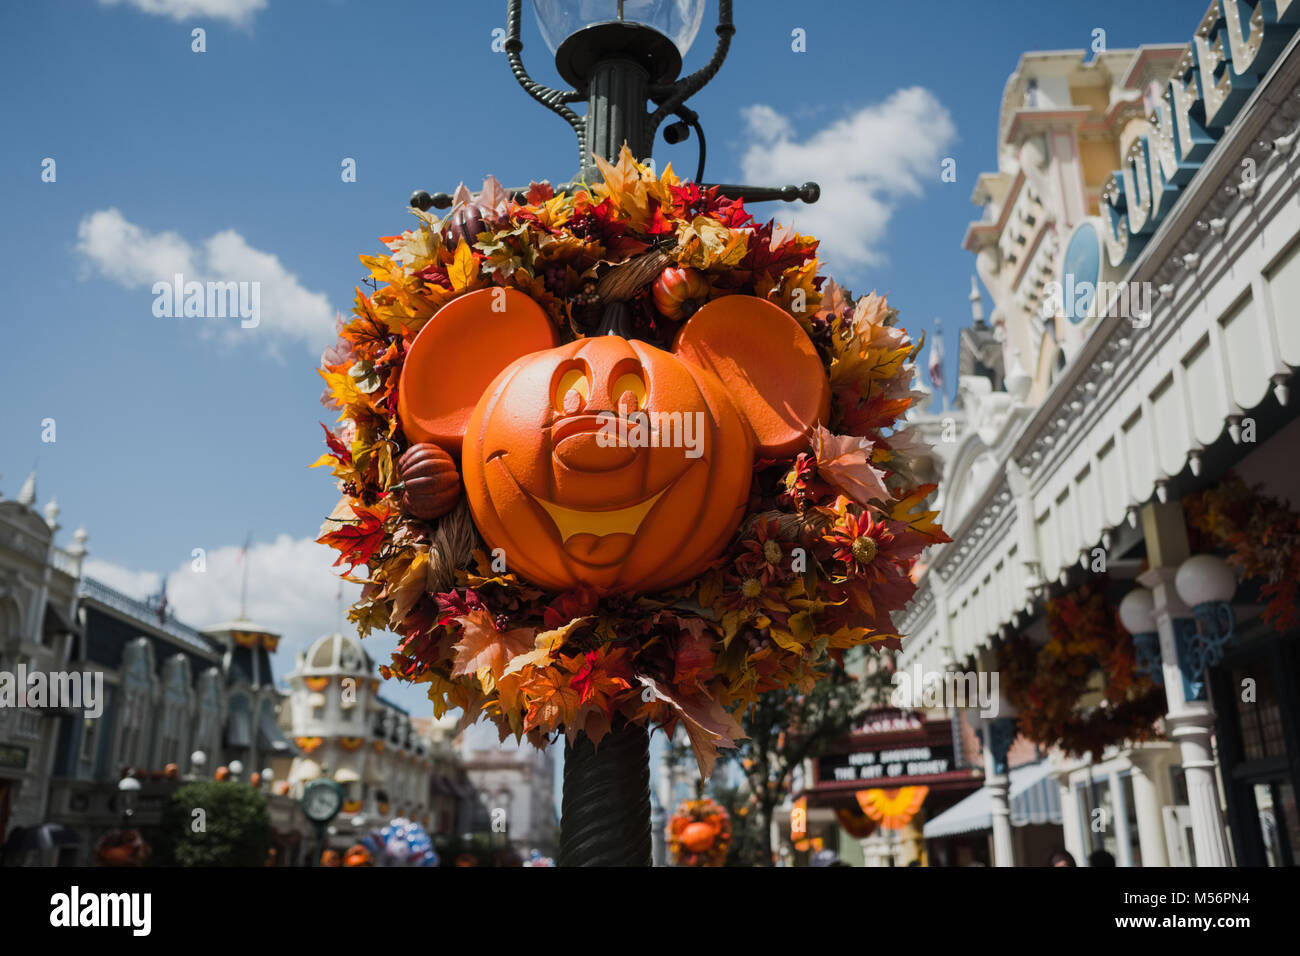 Halloween In Disney Florida.A Carved Mickey Mouse Pumpkin For Halloween At Disney World